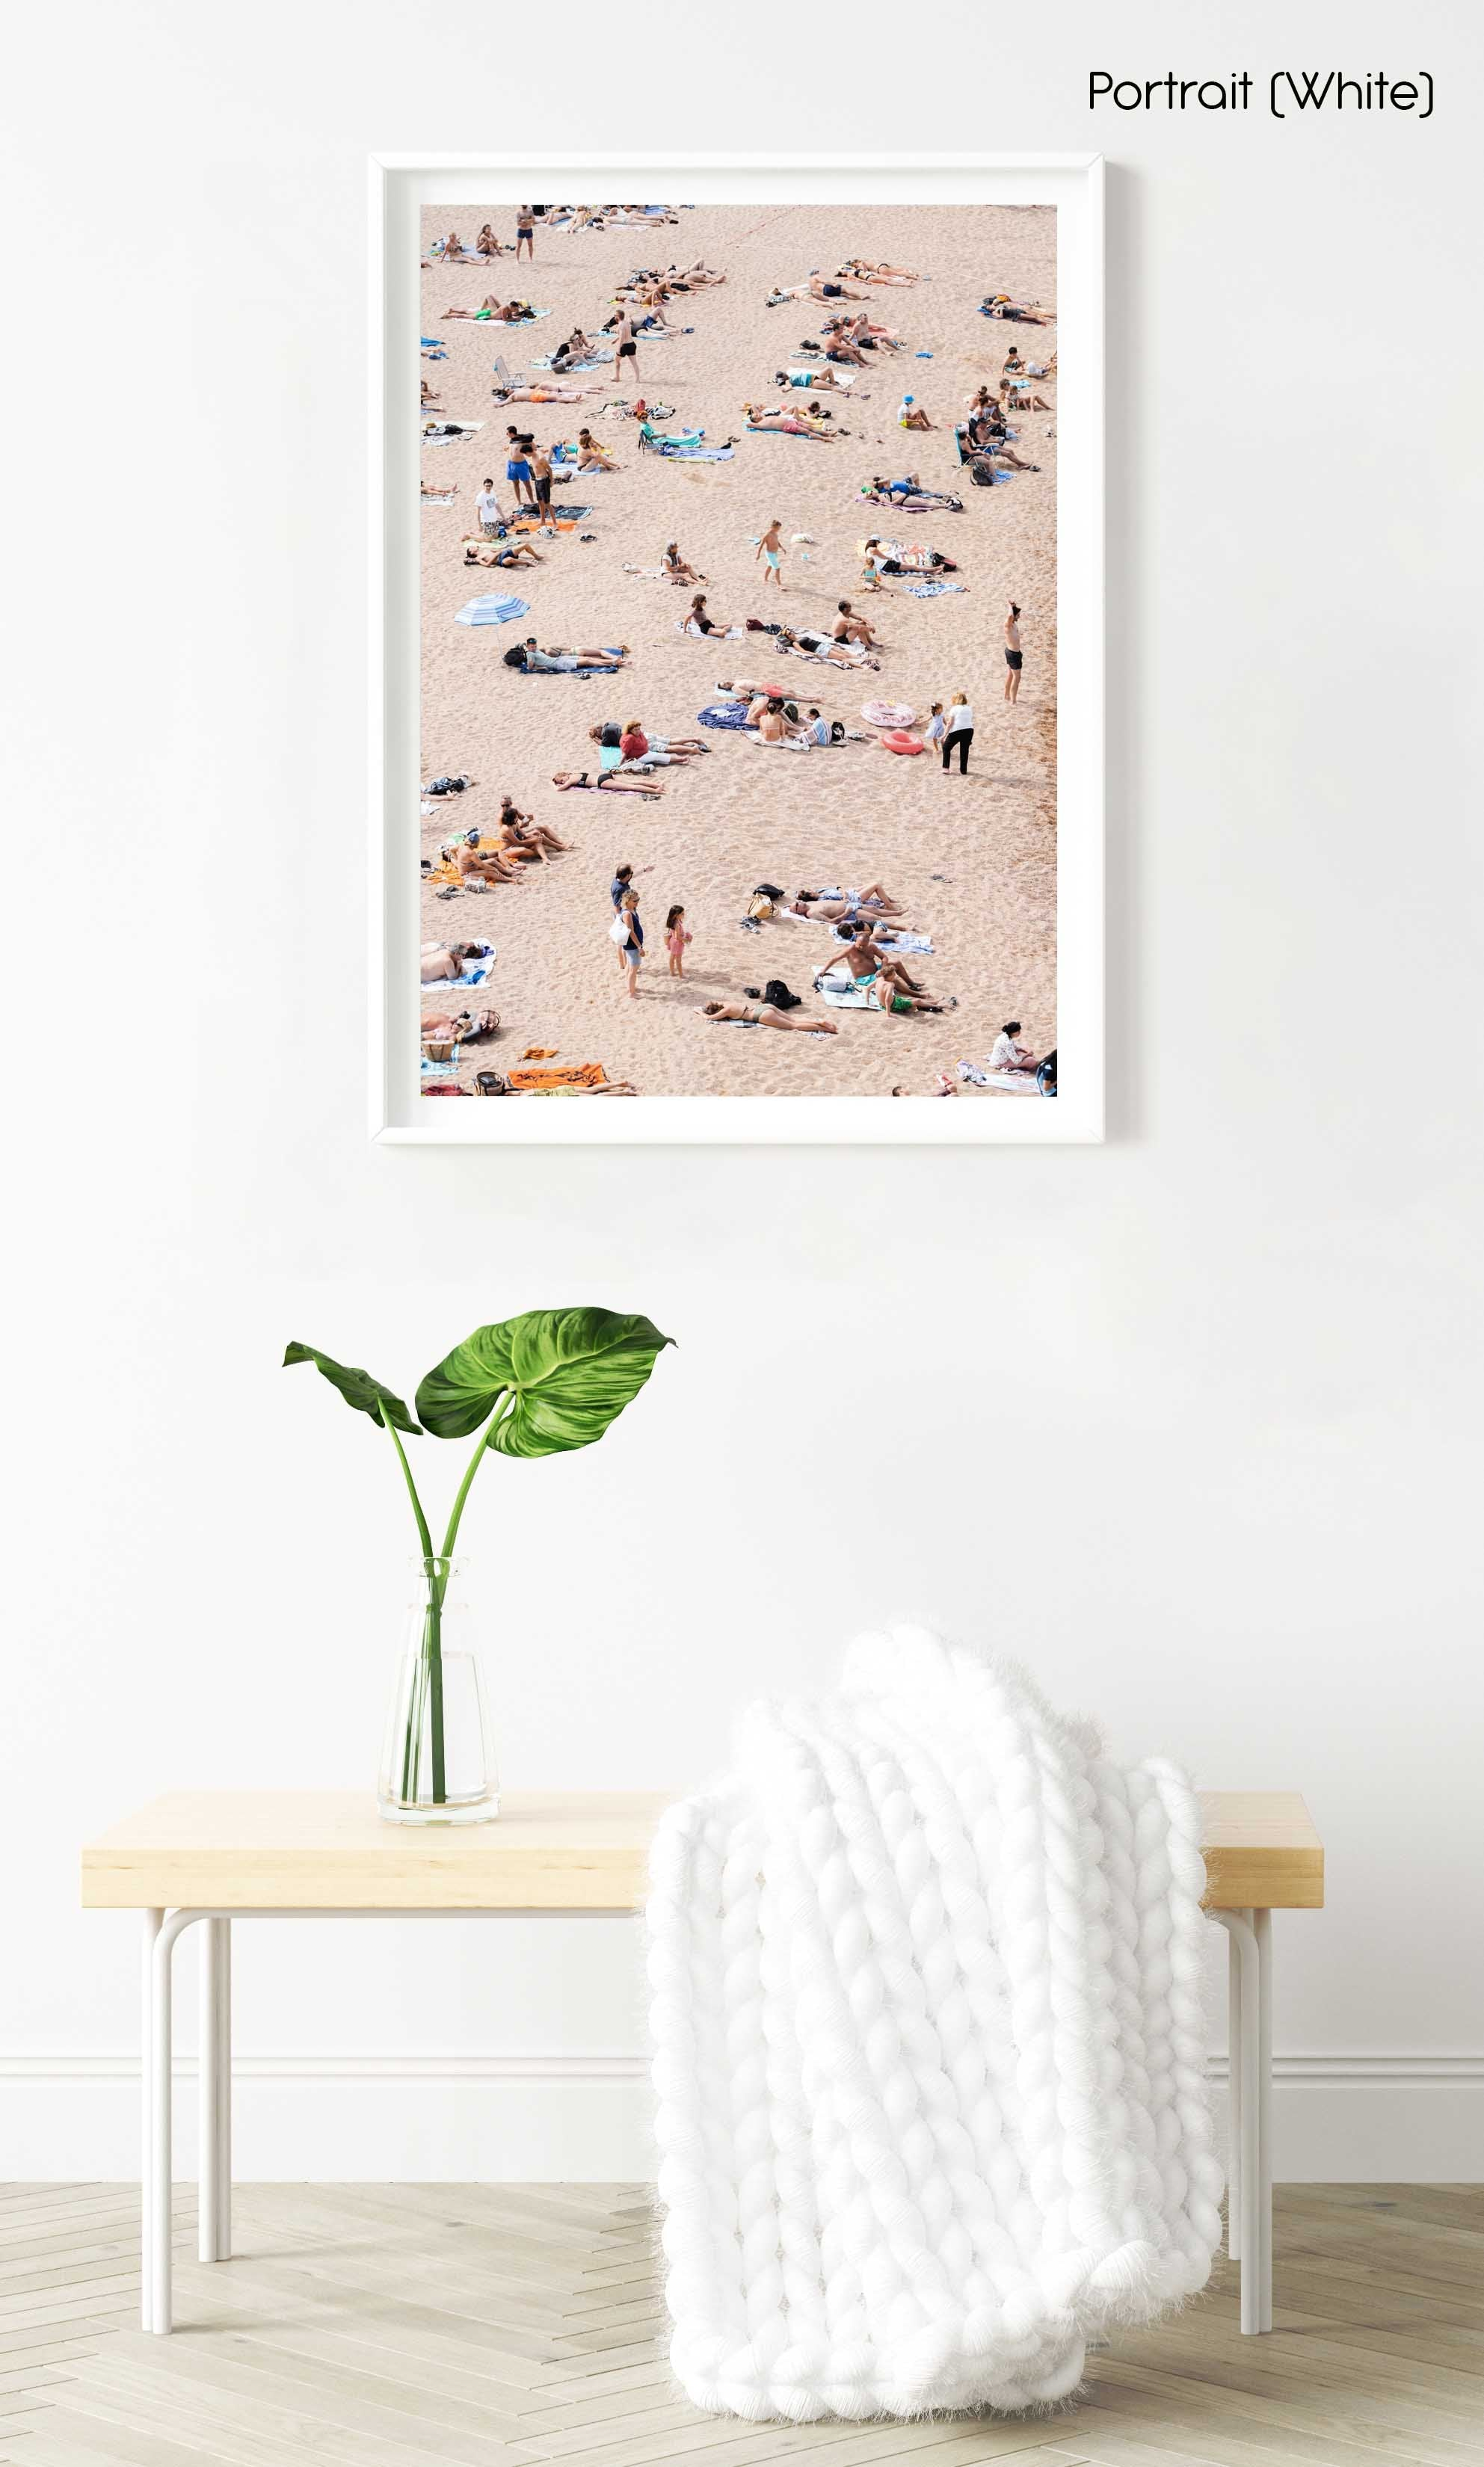 Lots of people lying on the sand in Tossa de Mar in a white fine art frame